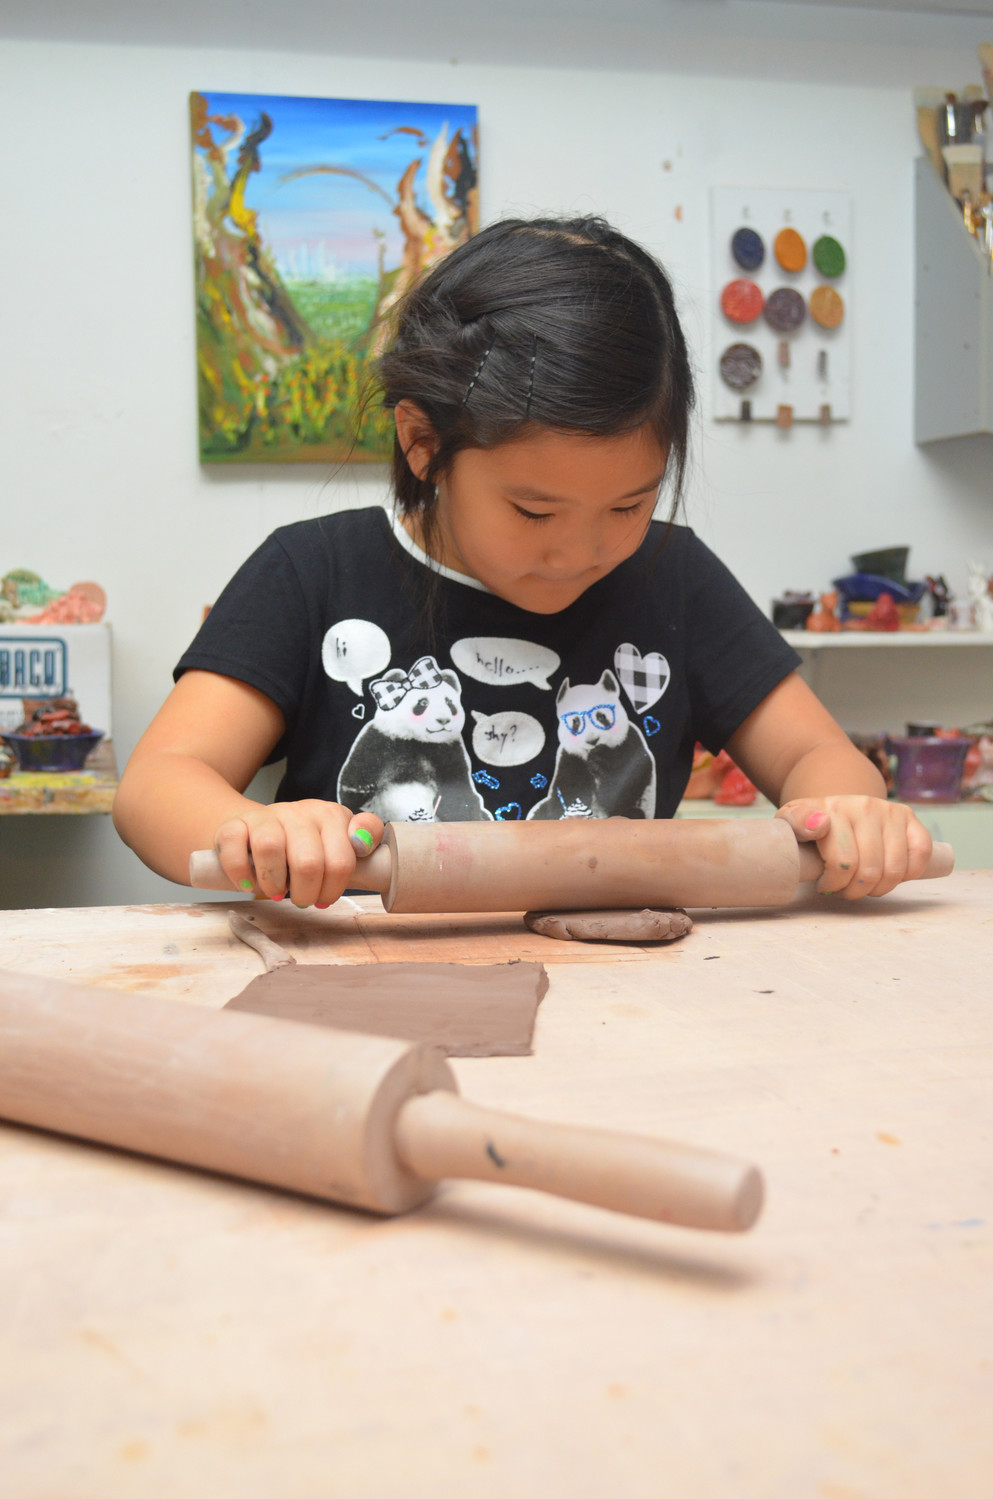 Vanessa Charoehert, 8, was hard at work on Oct. 15 for the CASK's open house.